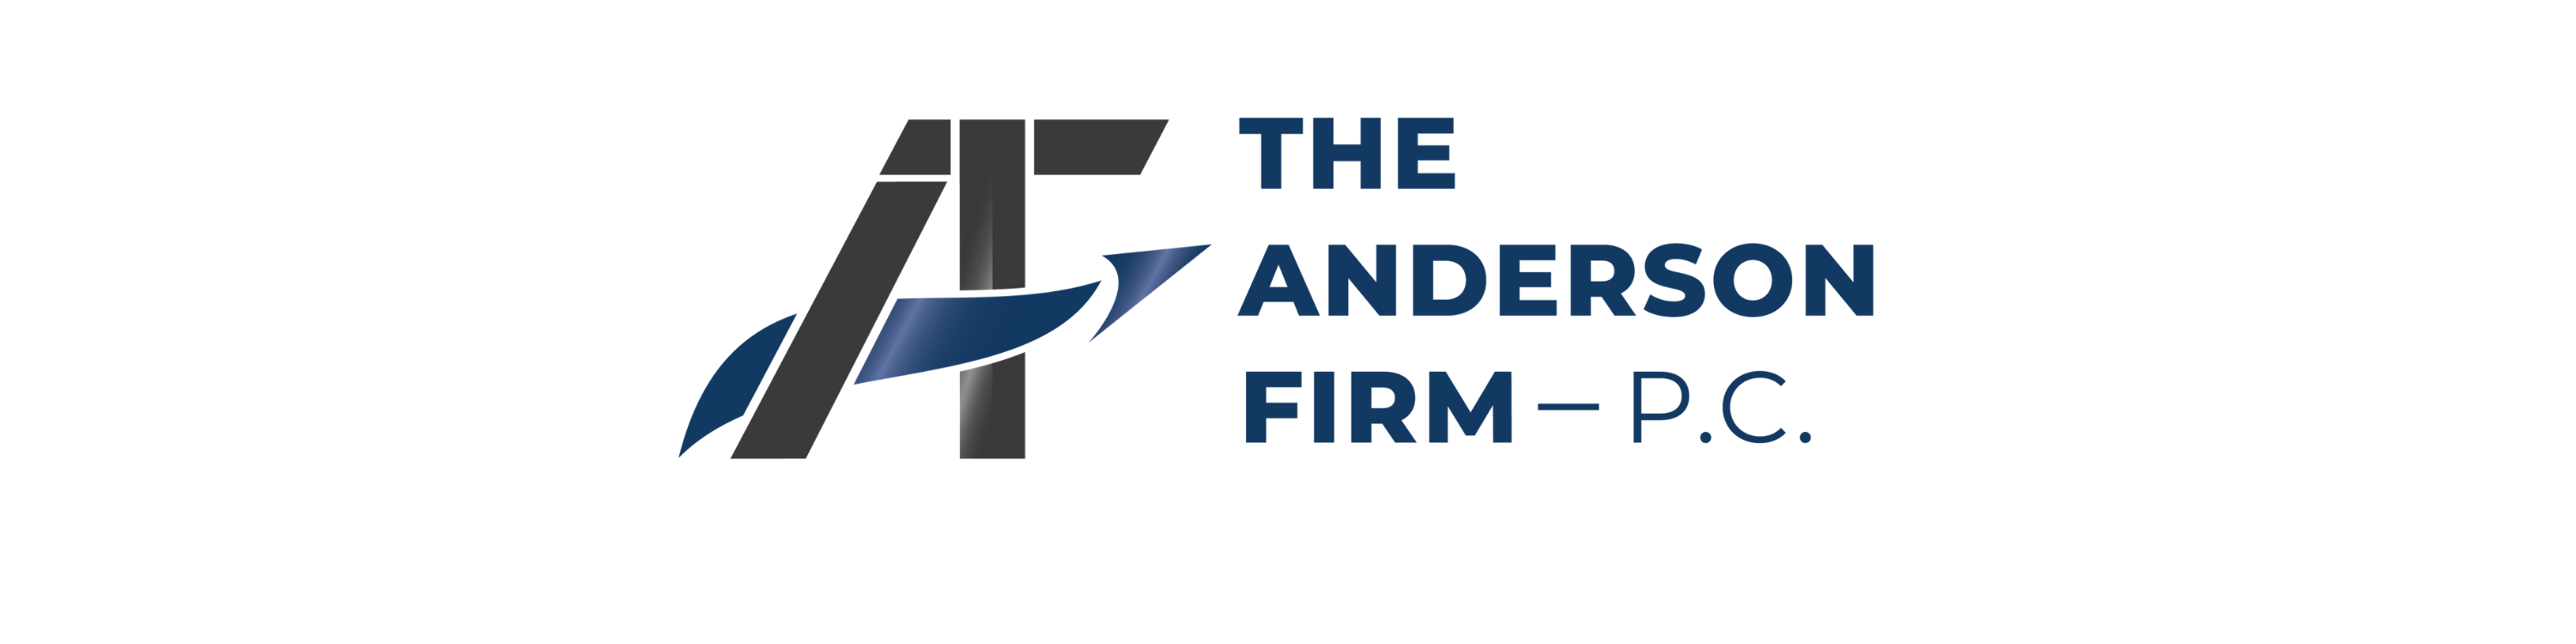 The Anderson Firm, P.C.